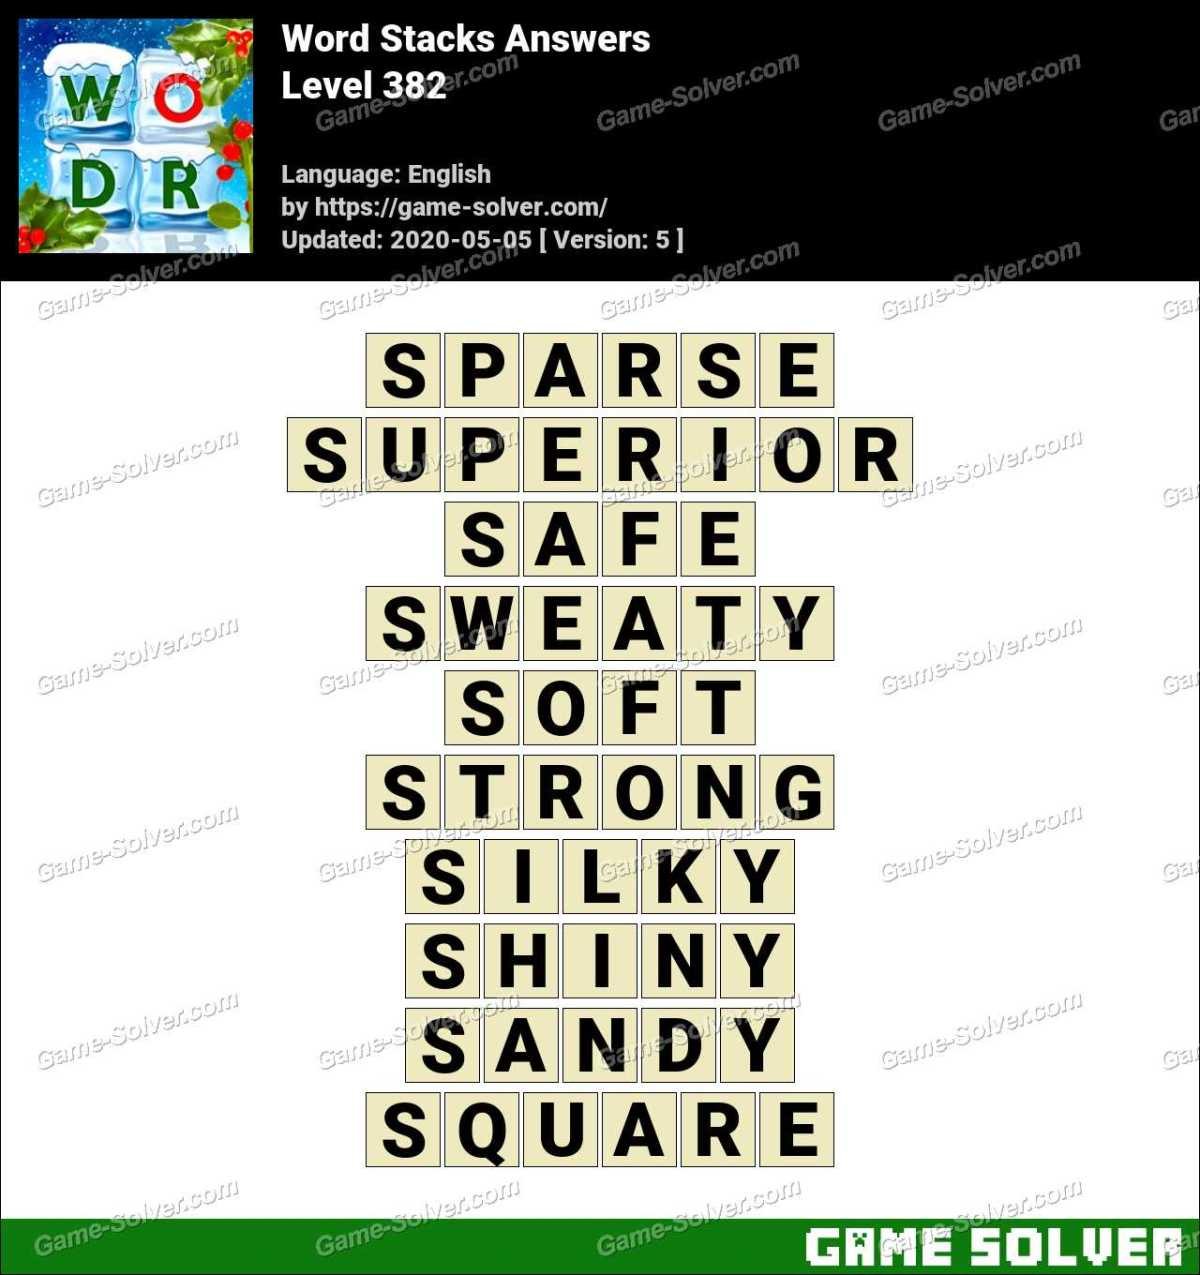 Word Stacks Level 382 Answers